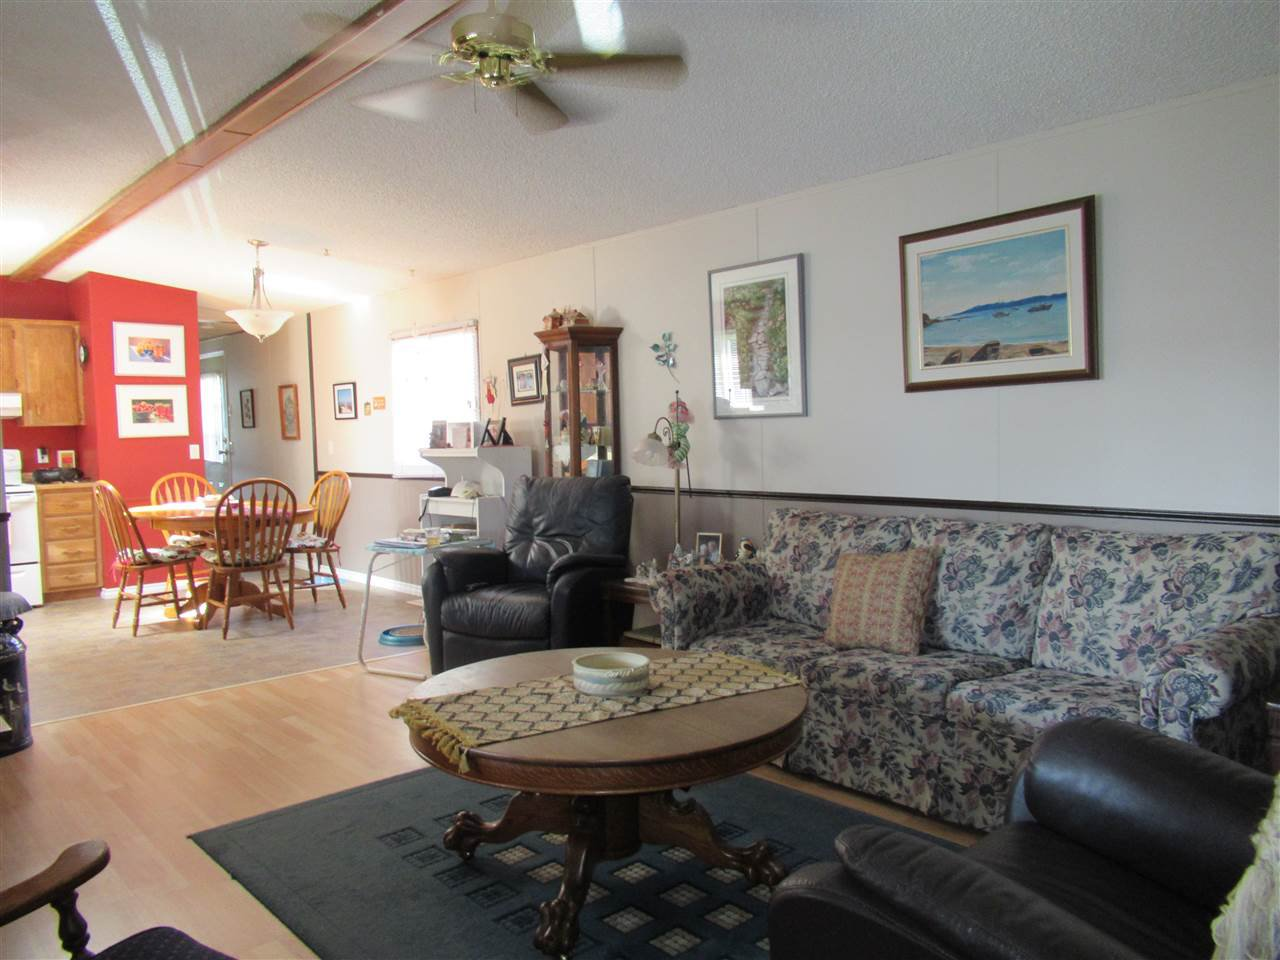 Photo 9: Photos: 75 770 11TH Avenue in Williams Lake: Williams Lake - City Manufactured Home for sale (Williams Lake (Zone 27))  : MLS®# R2368538